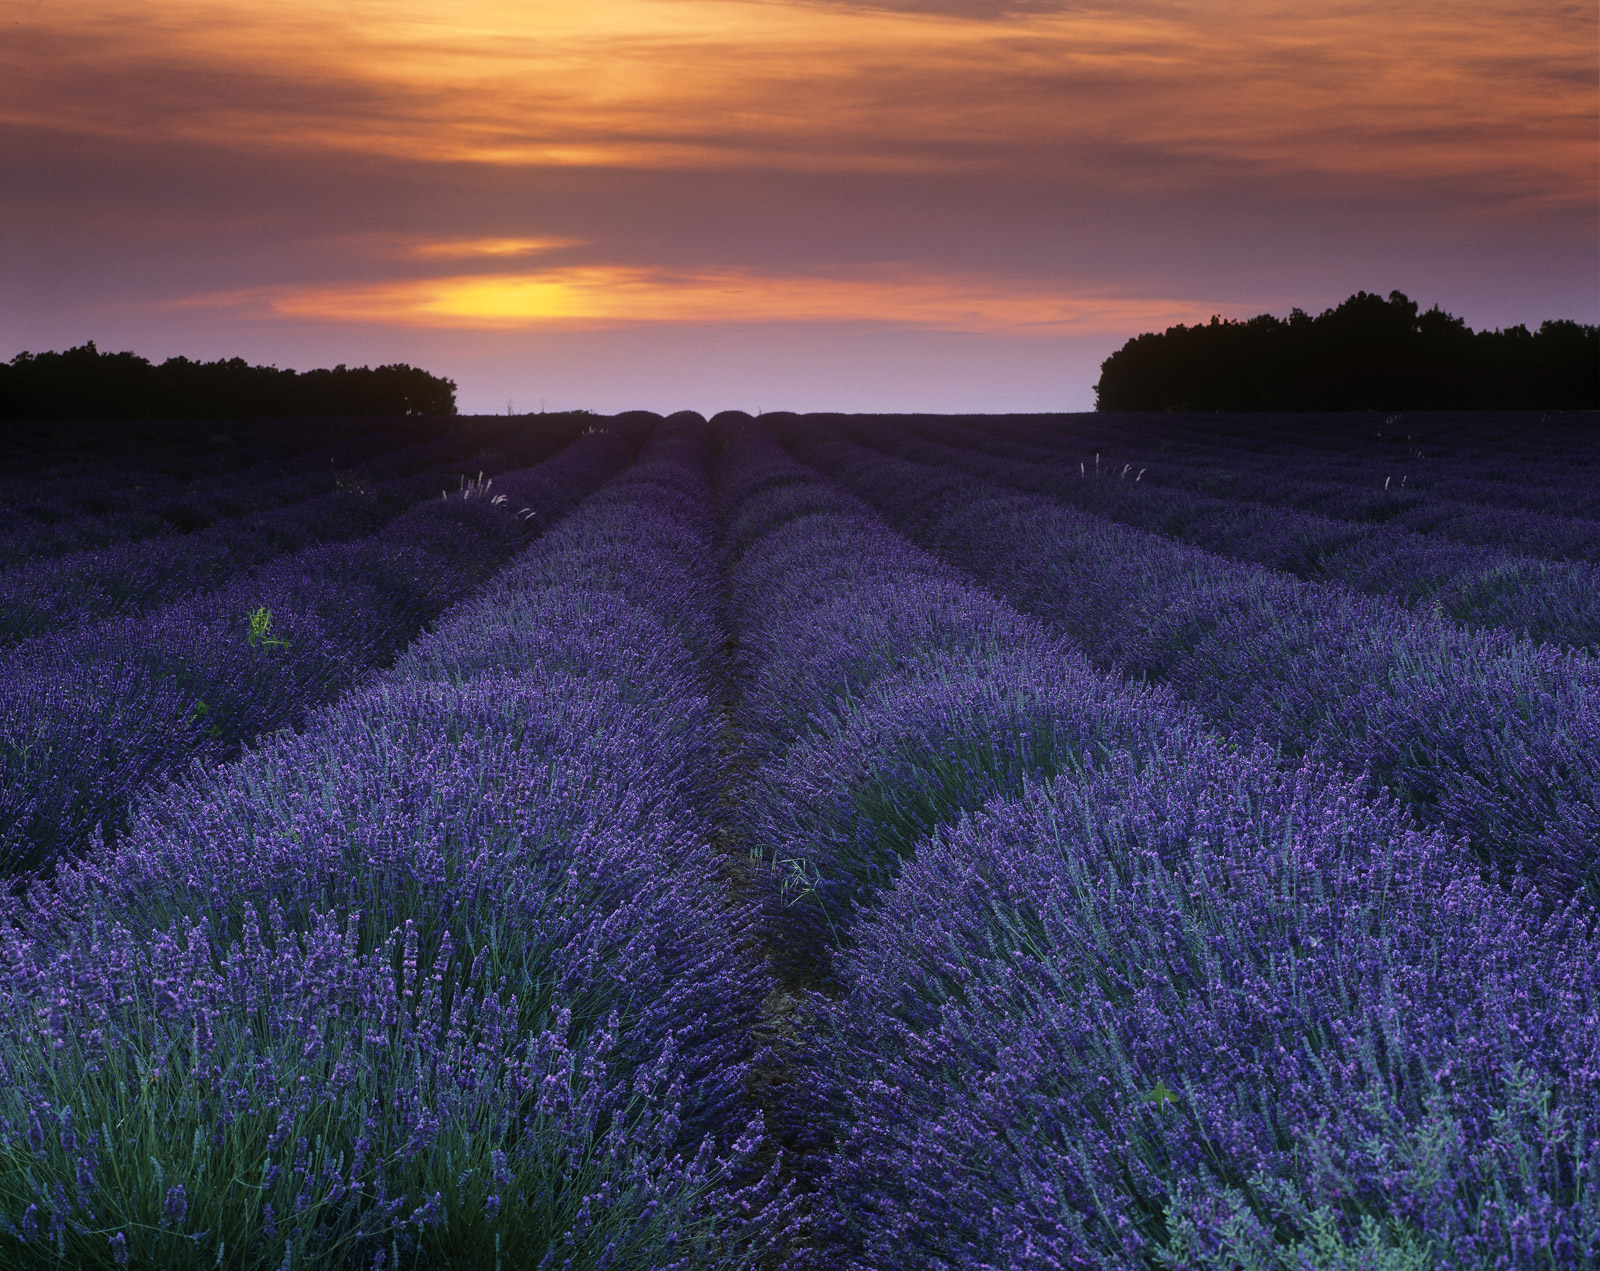 Converging lines of scented blue lavender flowers, the heady scent throbbing and buzzing with a billion bees oblivious of my...